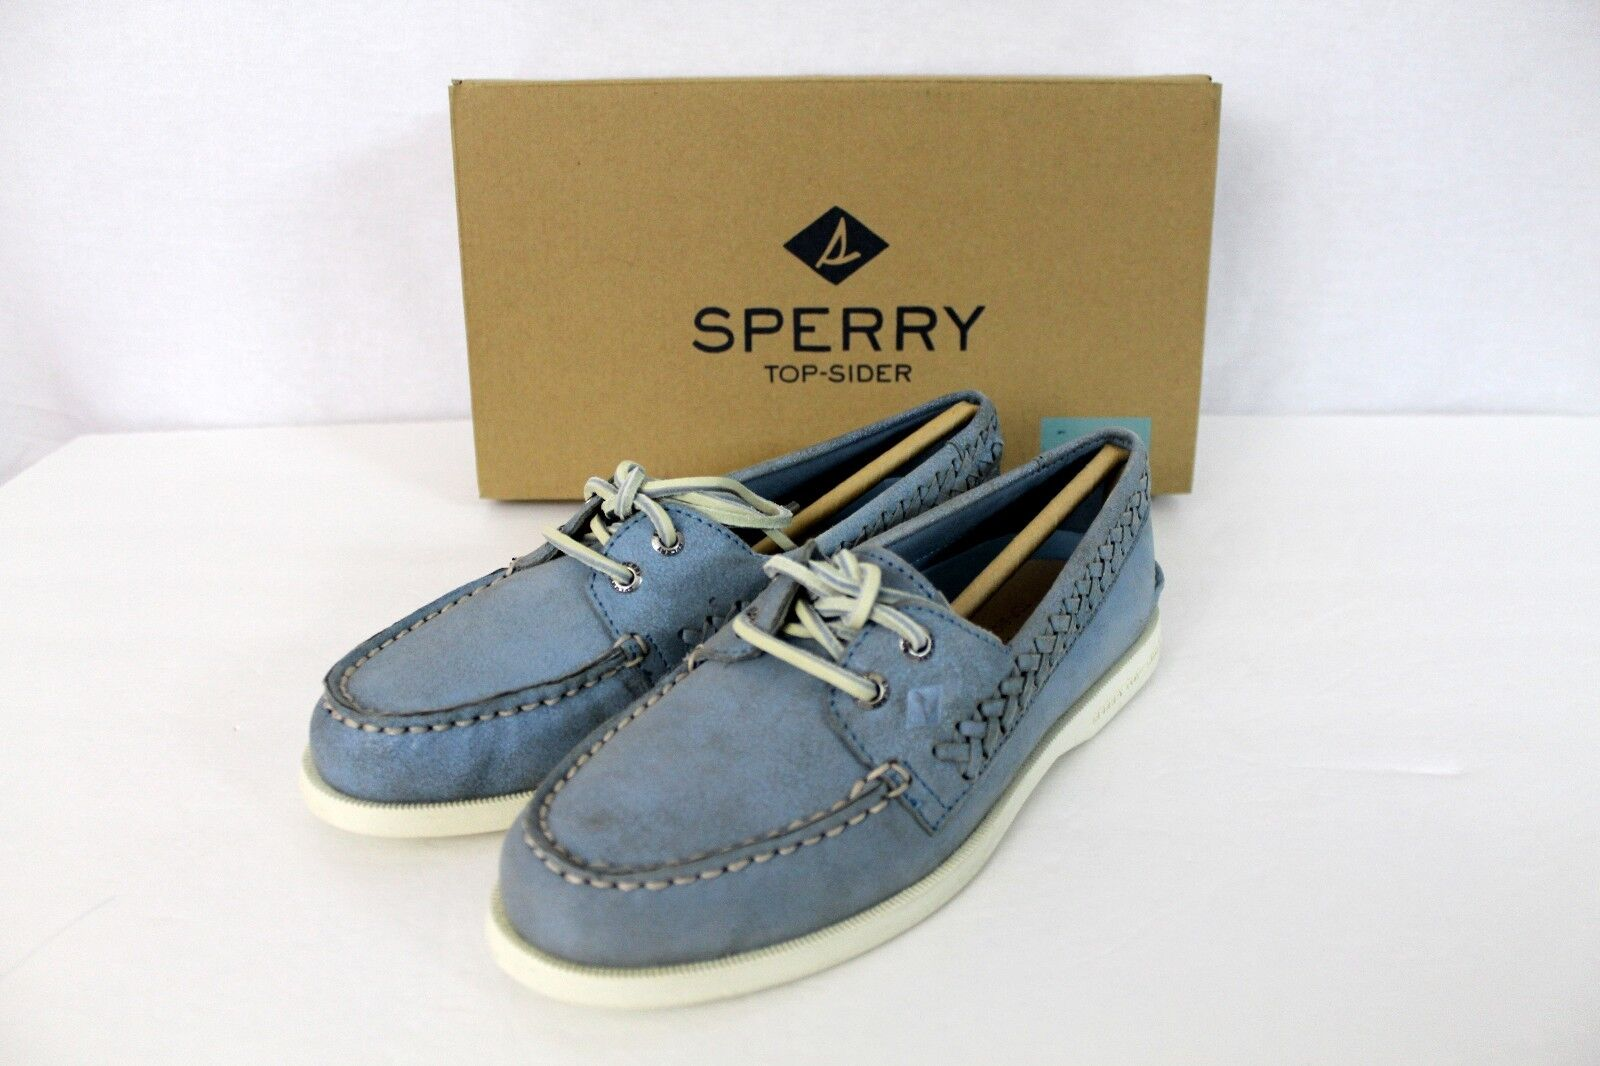 vendita scontata Sperry Top-Sider Quinn Boat scarpe blu Leather Donna    Dimensione 5 NEW NIB  95 Retail  comodamente